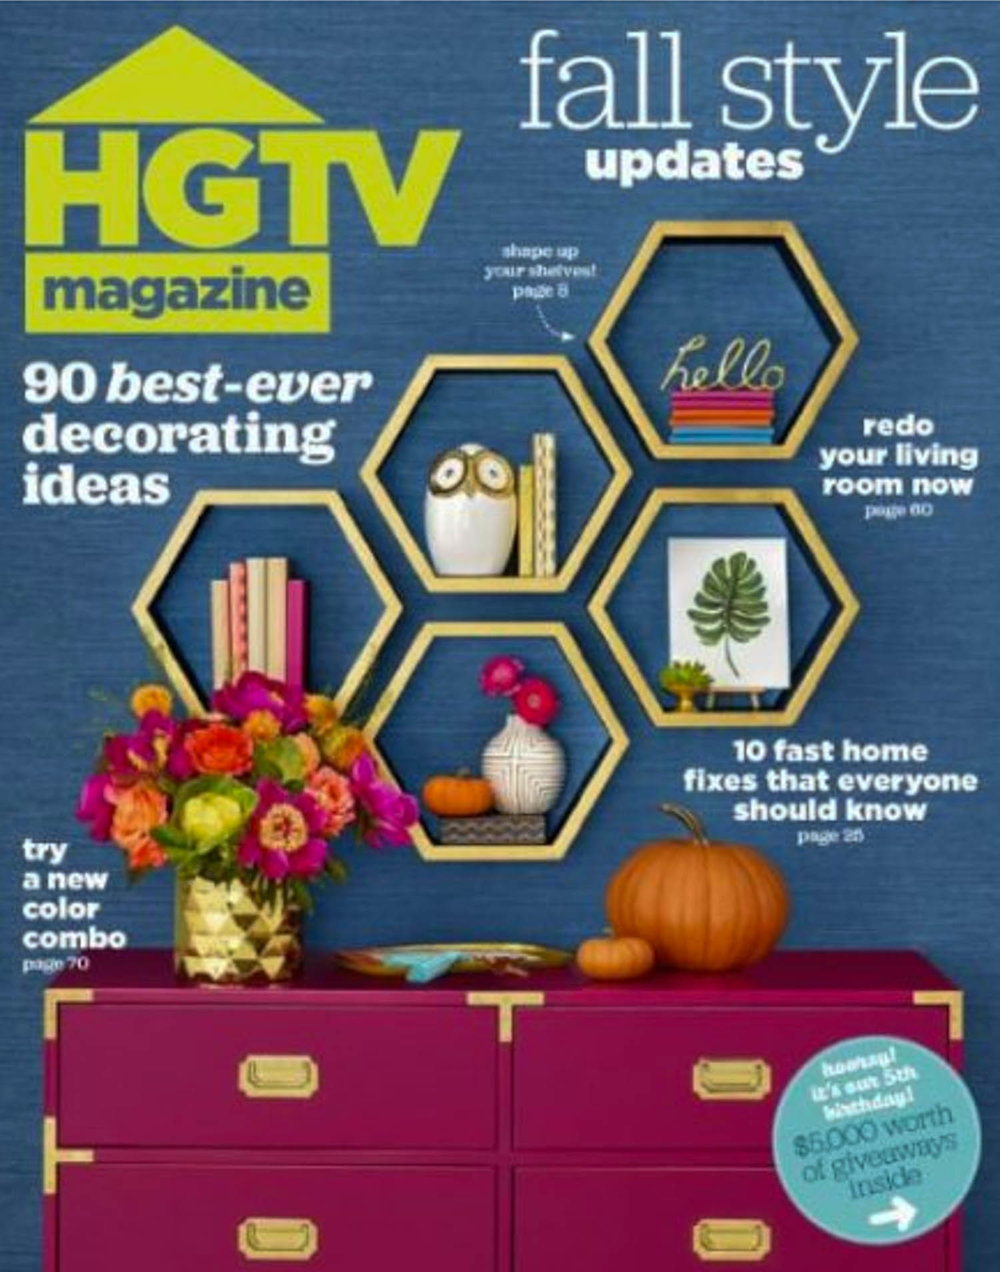 FEATURED IN october 2016 HGTV MAGAZINE, pg 153